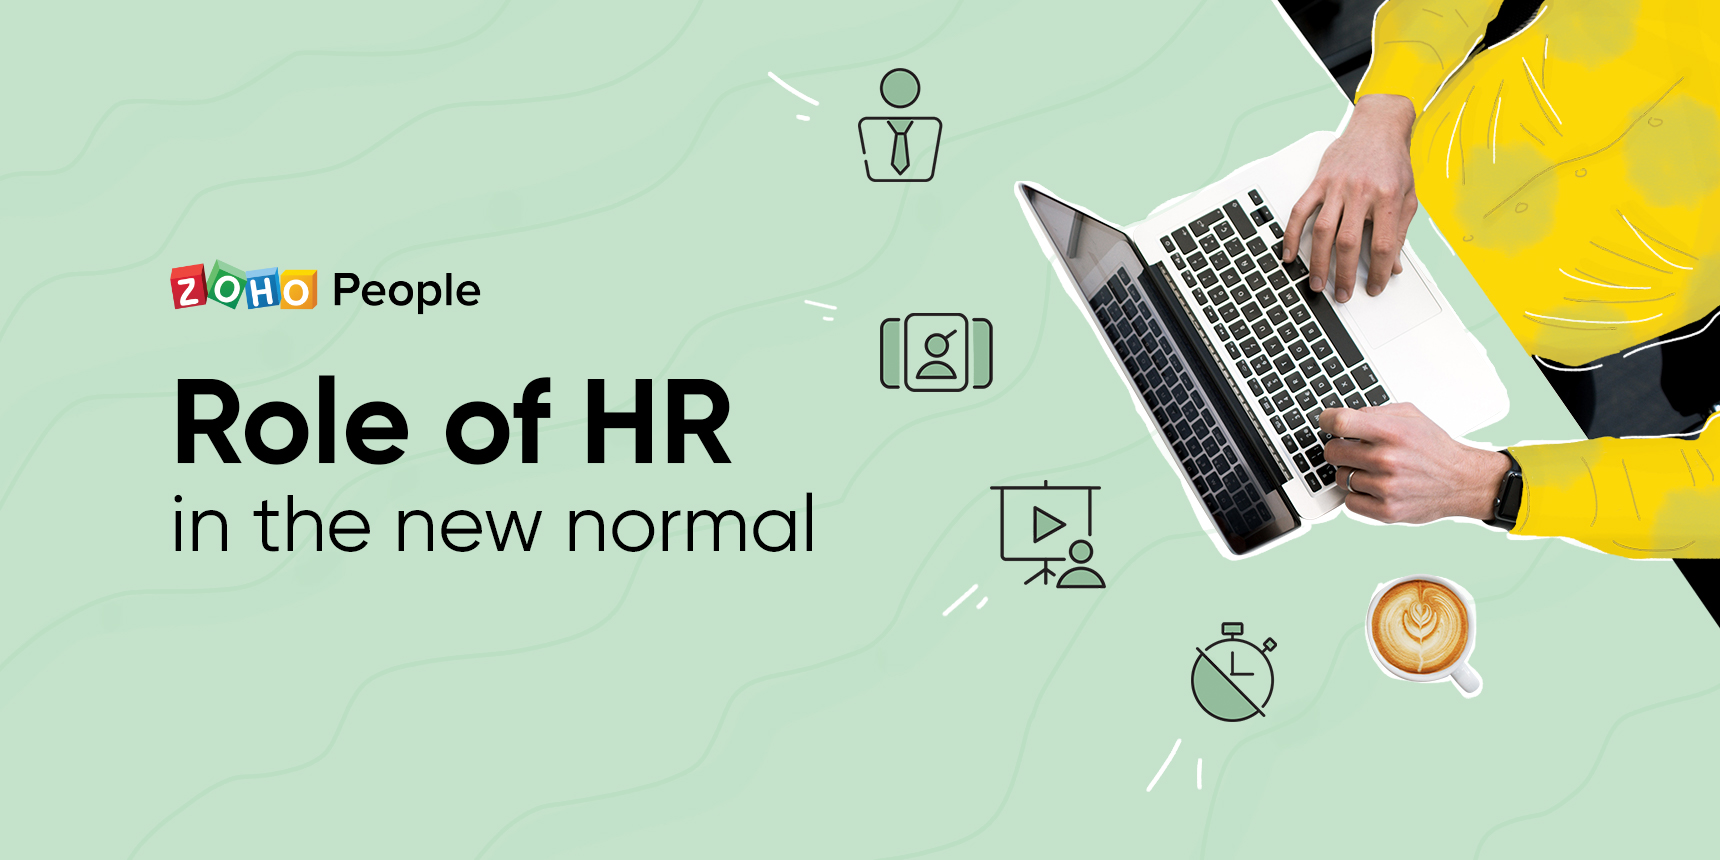 How to better manage employees during the new normal